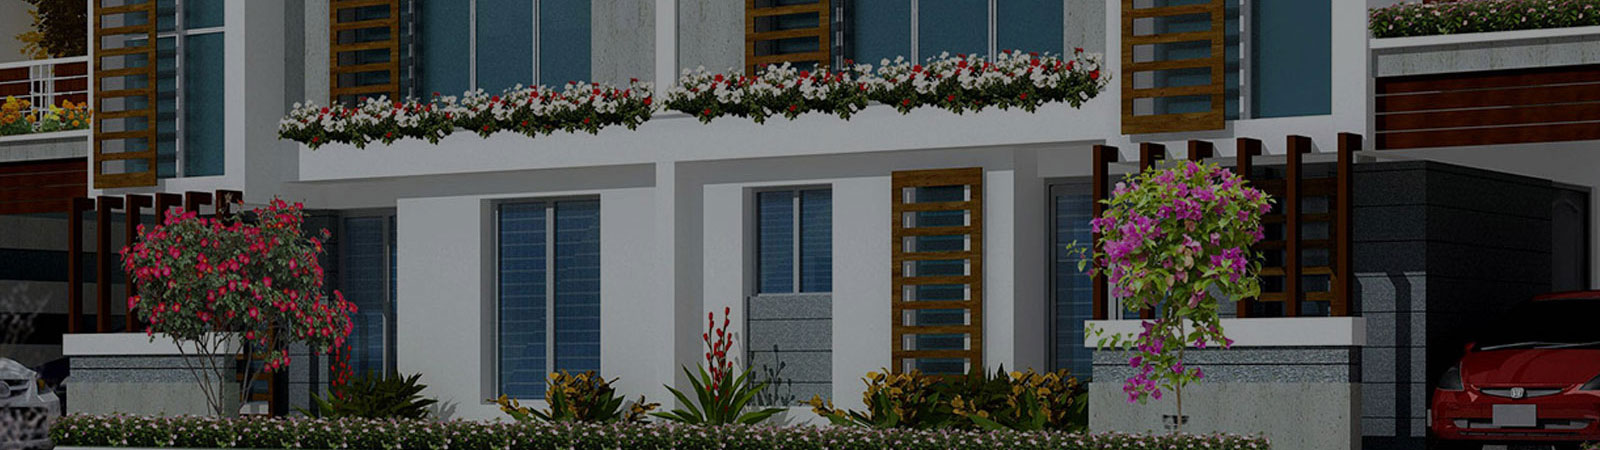 Where Can You Find Affordable Luxury Flats in Chennai?